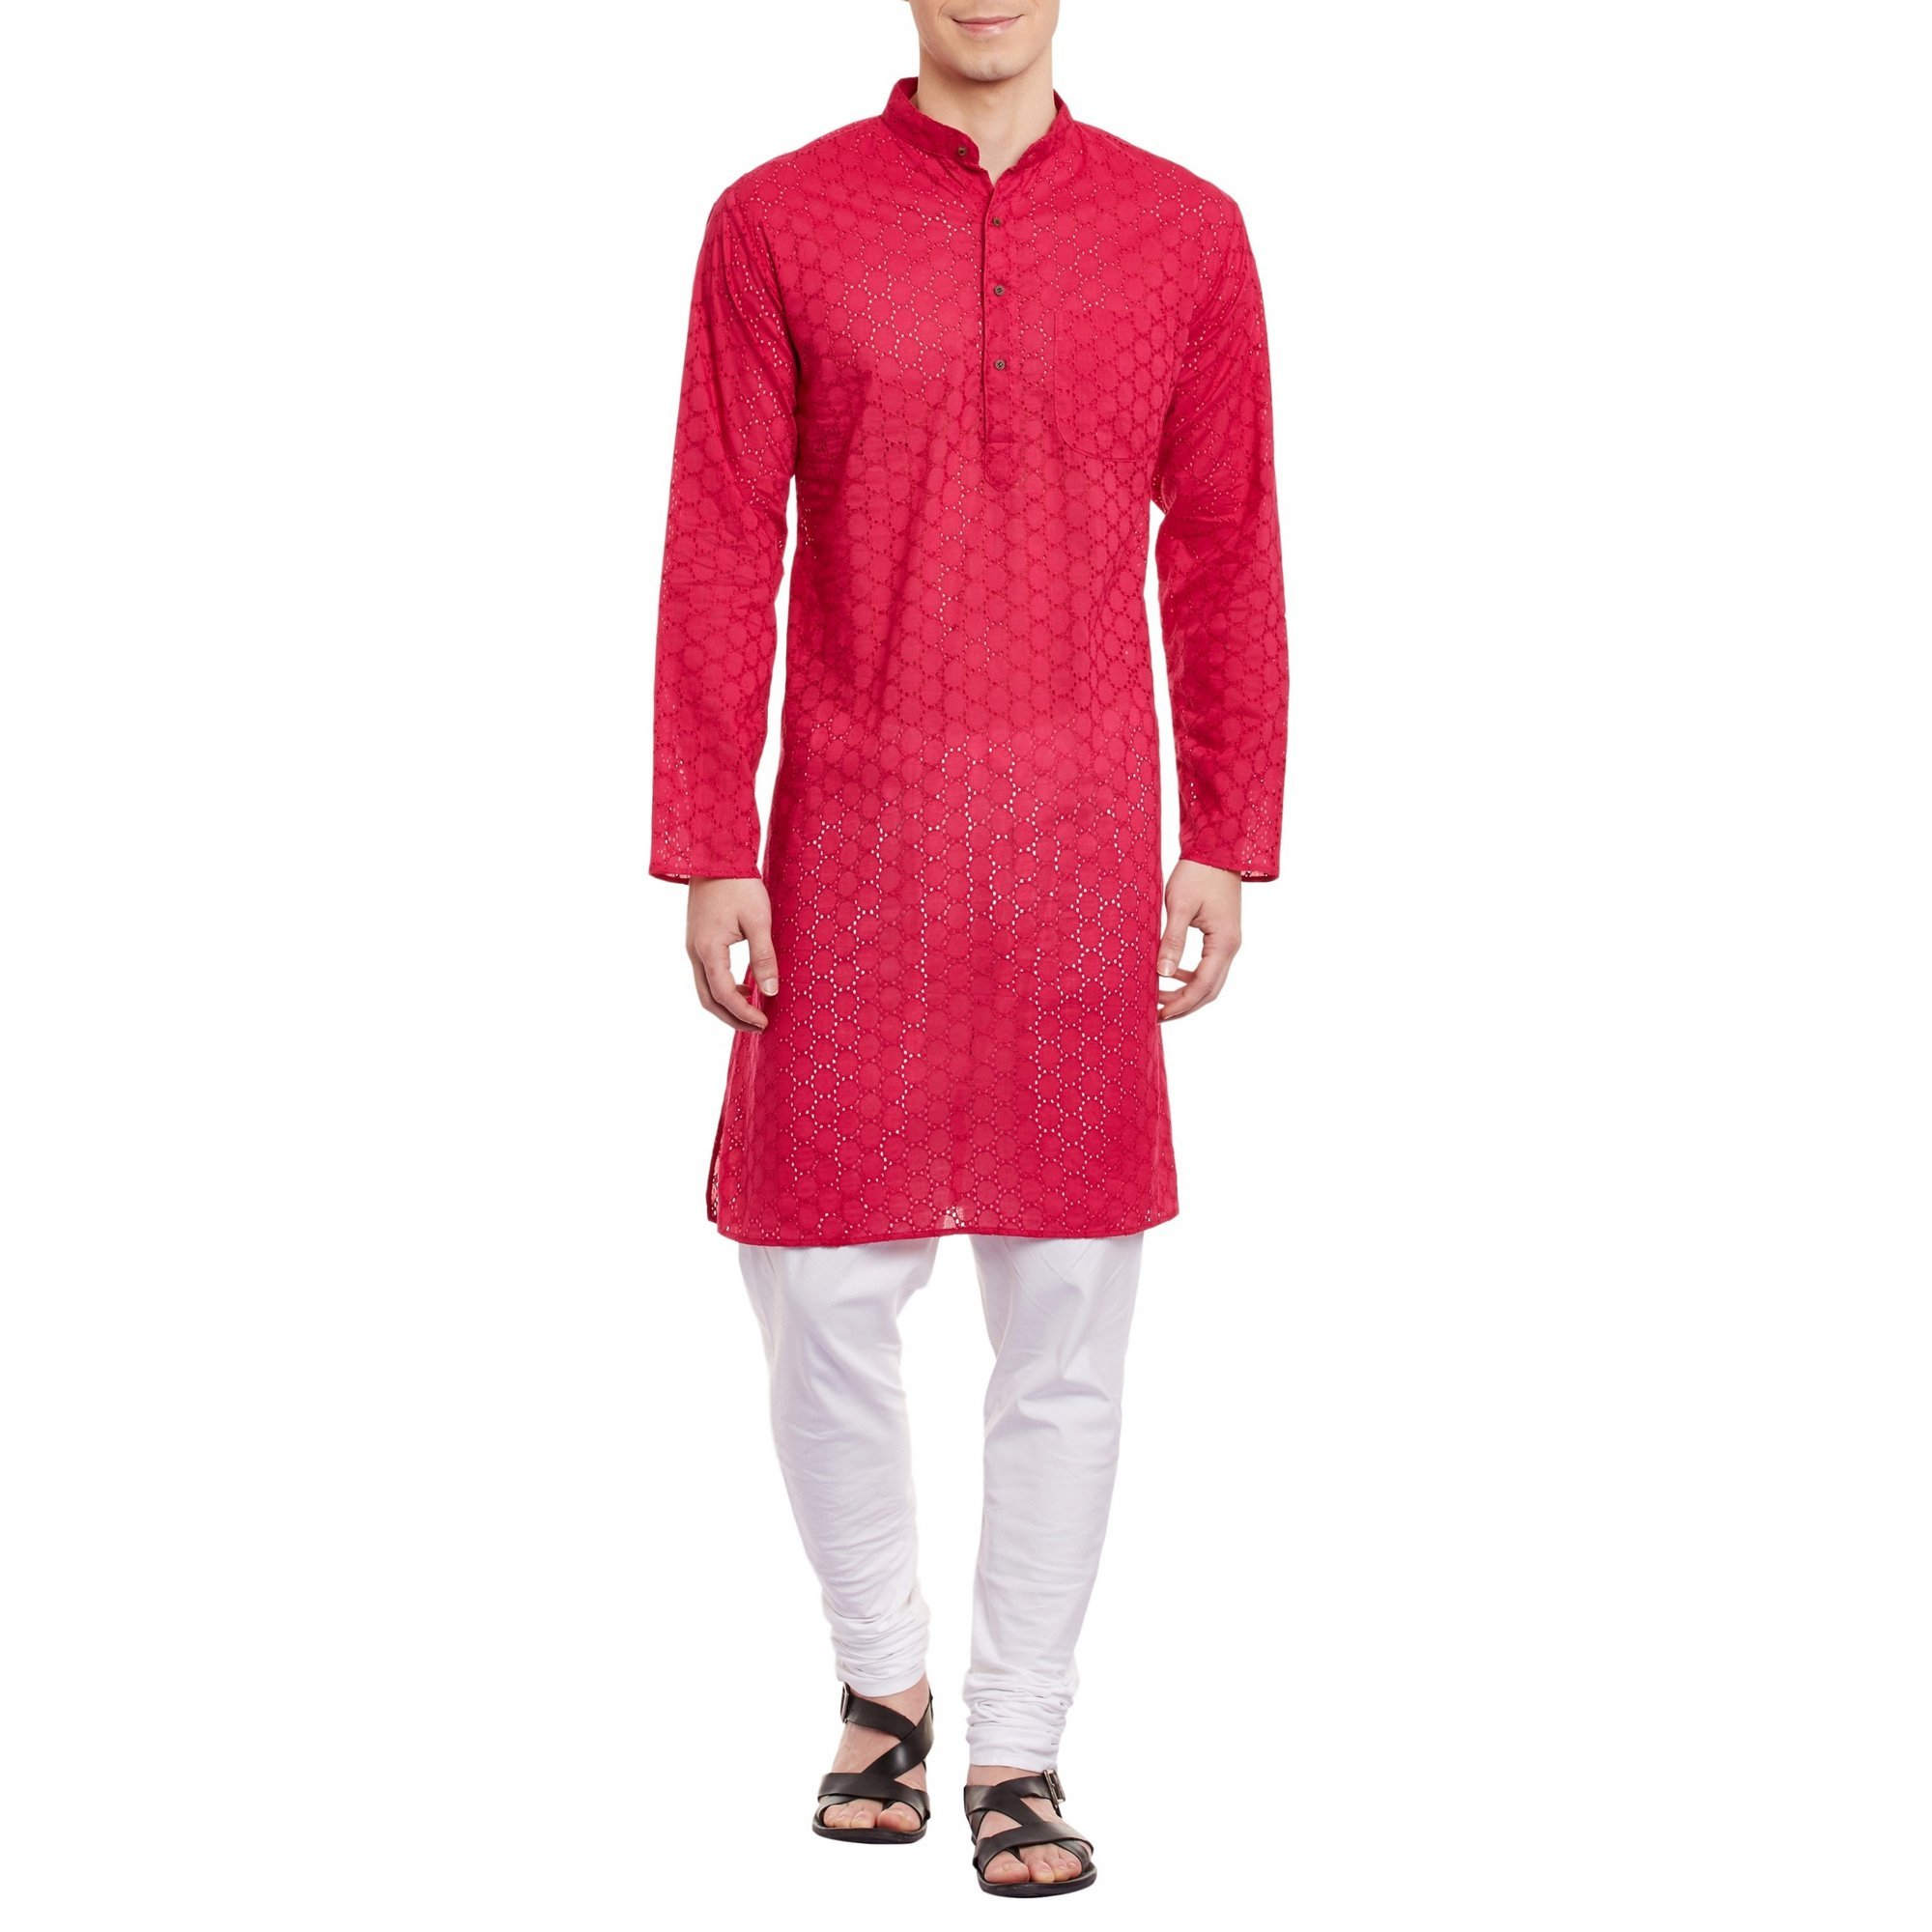 ShalinIndia Mens Embroidered Cutwork Cotton Kurta With Churidar Pajama Trousers Machine Embroidery,Pink Chest Size: 38 Inch